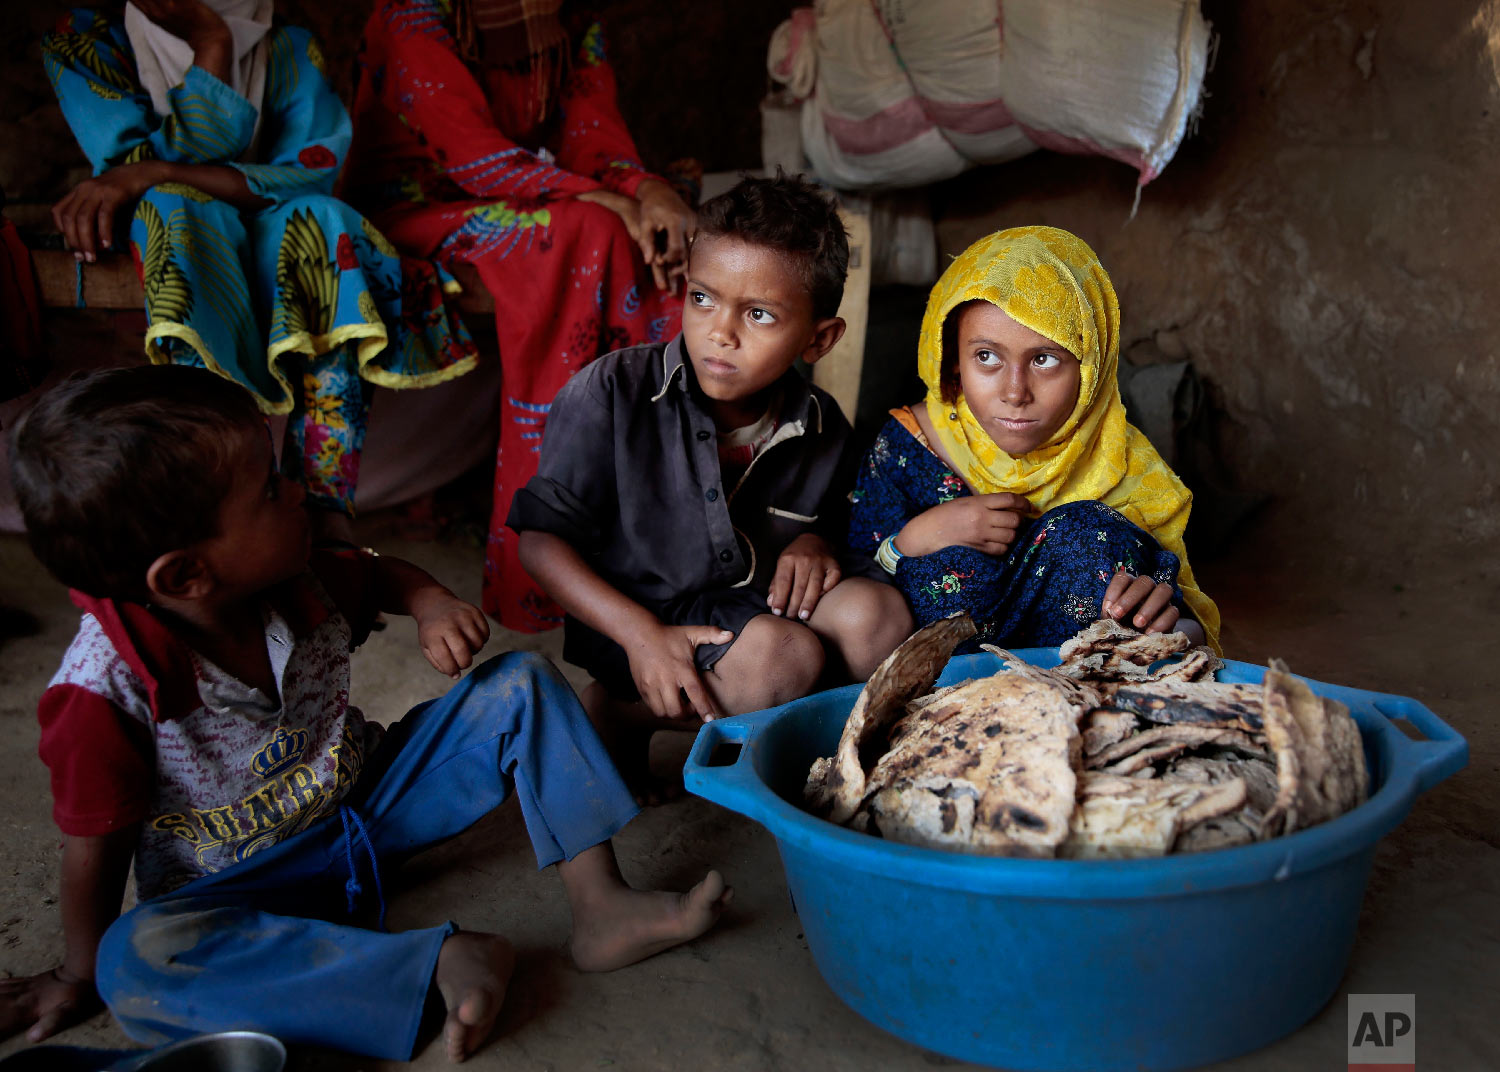 Children sit in front of moldy bread in their shelter, in Aslam, Hajjah, Yemen. (AP Photo/Hani Mohammed)